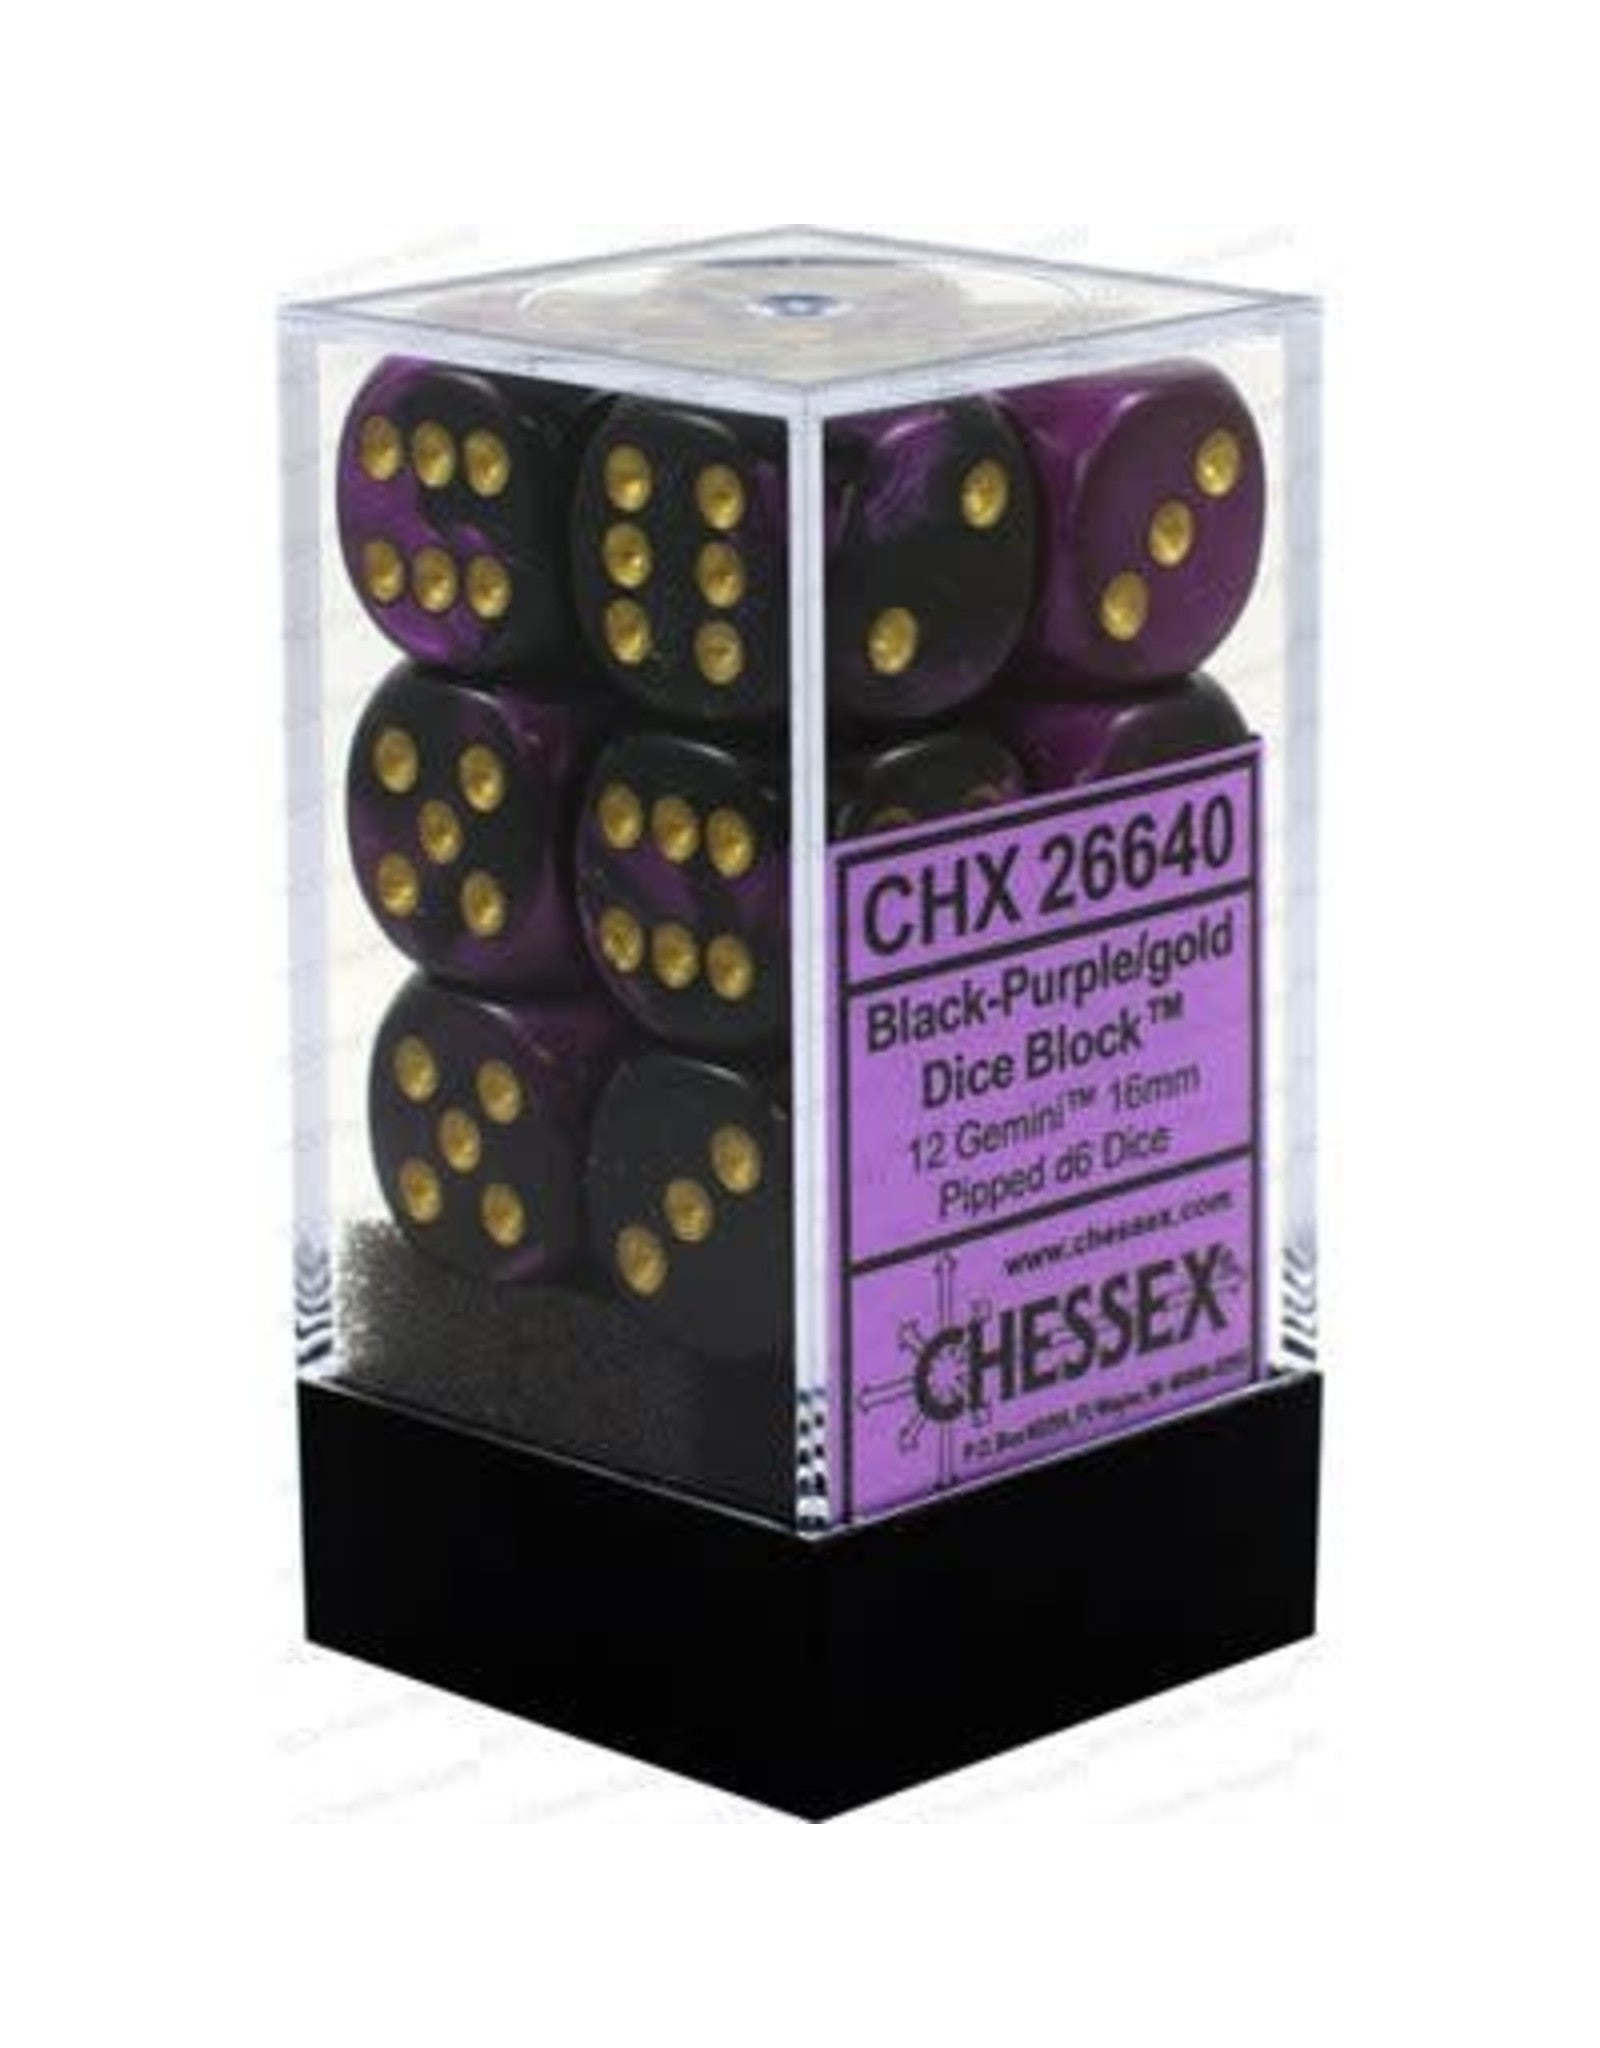 CHESSEX Gemini 12D6 Black-Purple/Gold 16MM (CHX26640) | Eastridge Sports Cards & Games